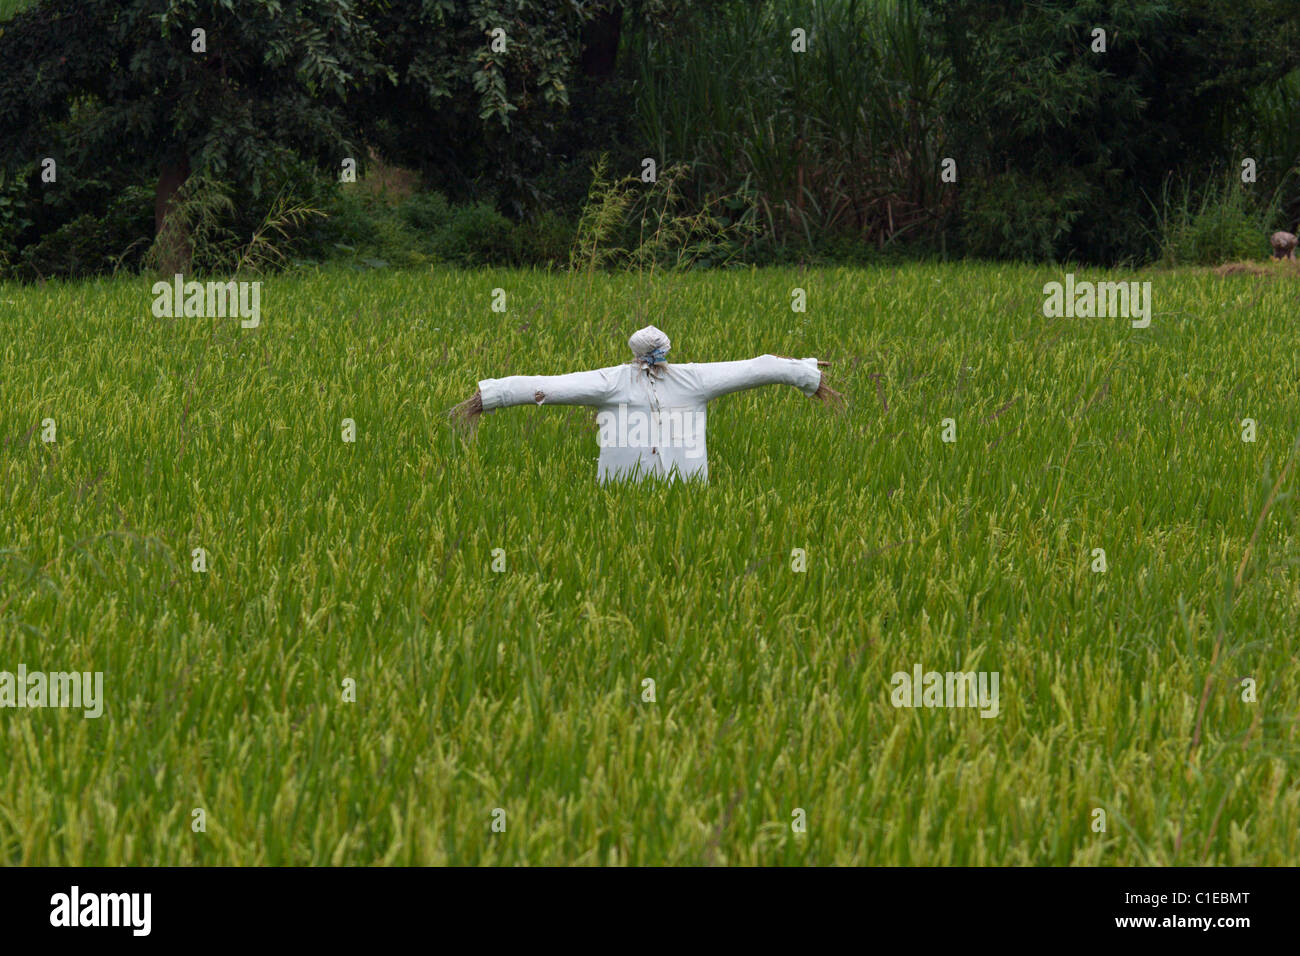 scare crow fields India rice sugar cane farming agriculture - Stock Image